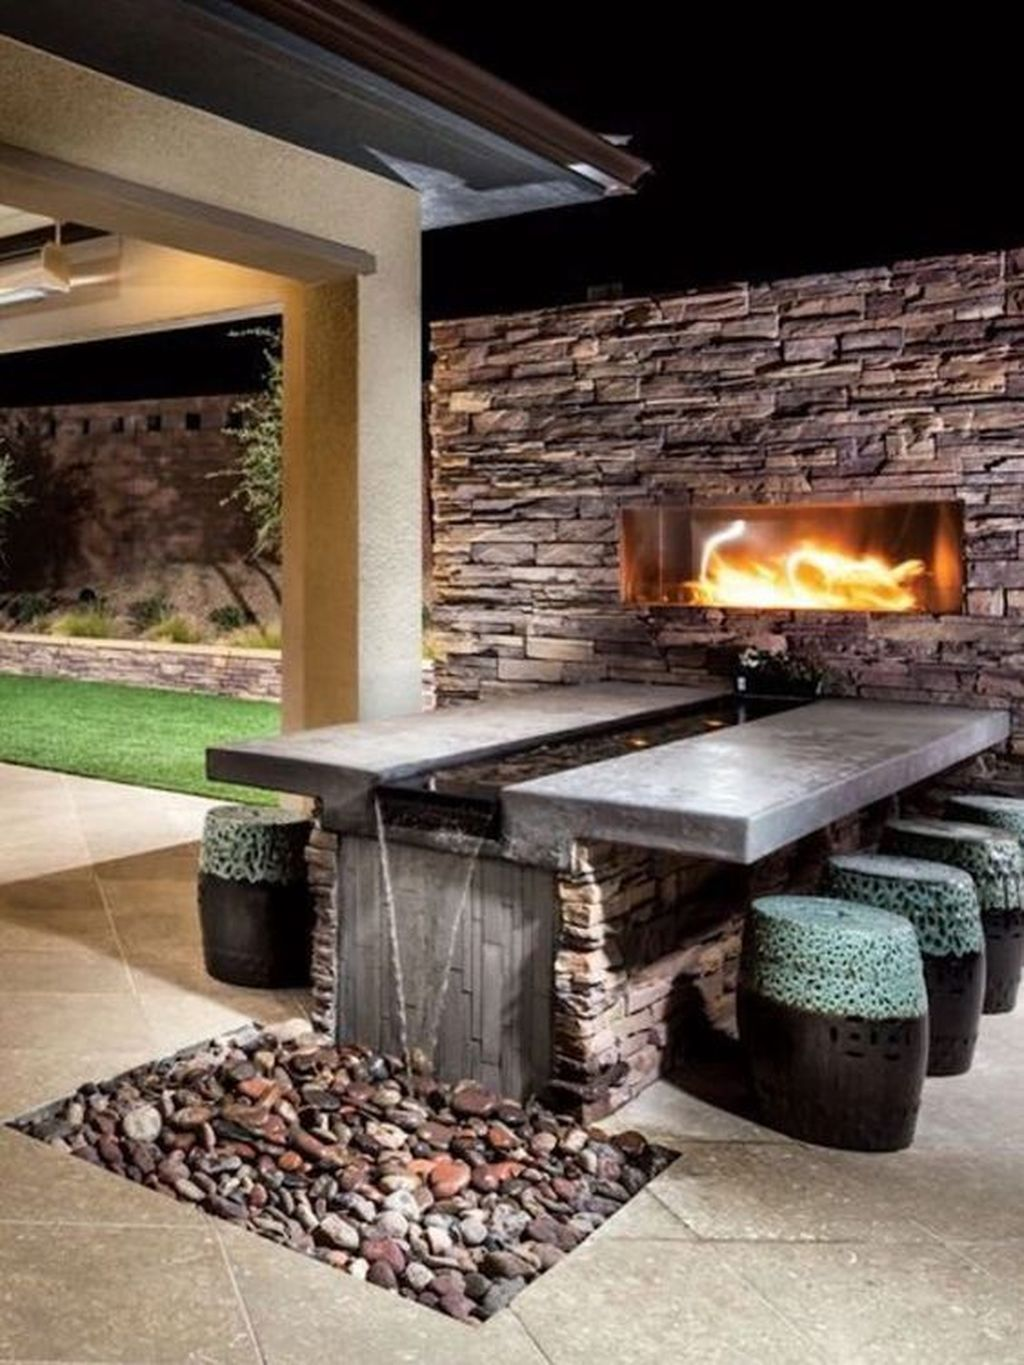 34 The Best Backyard Fireplace Ideas Suitable For All Season